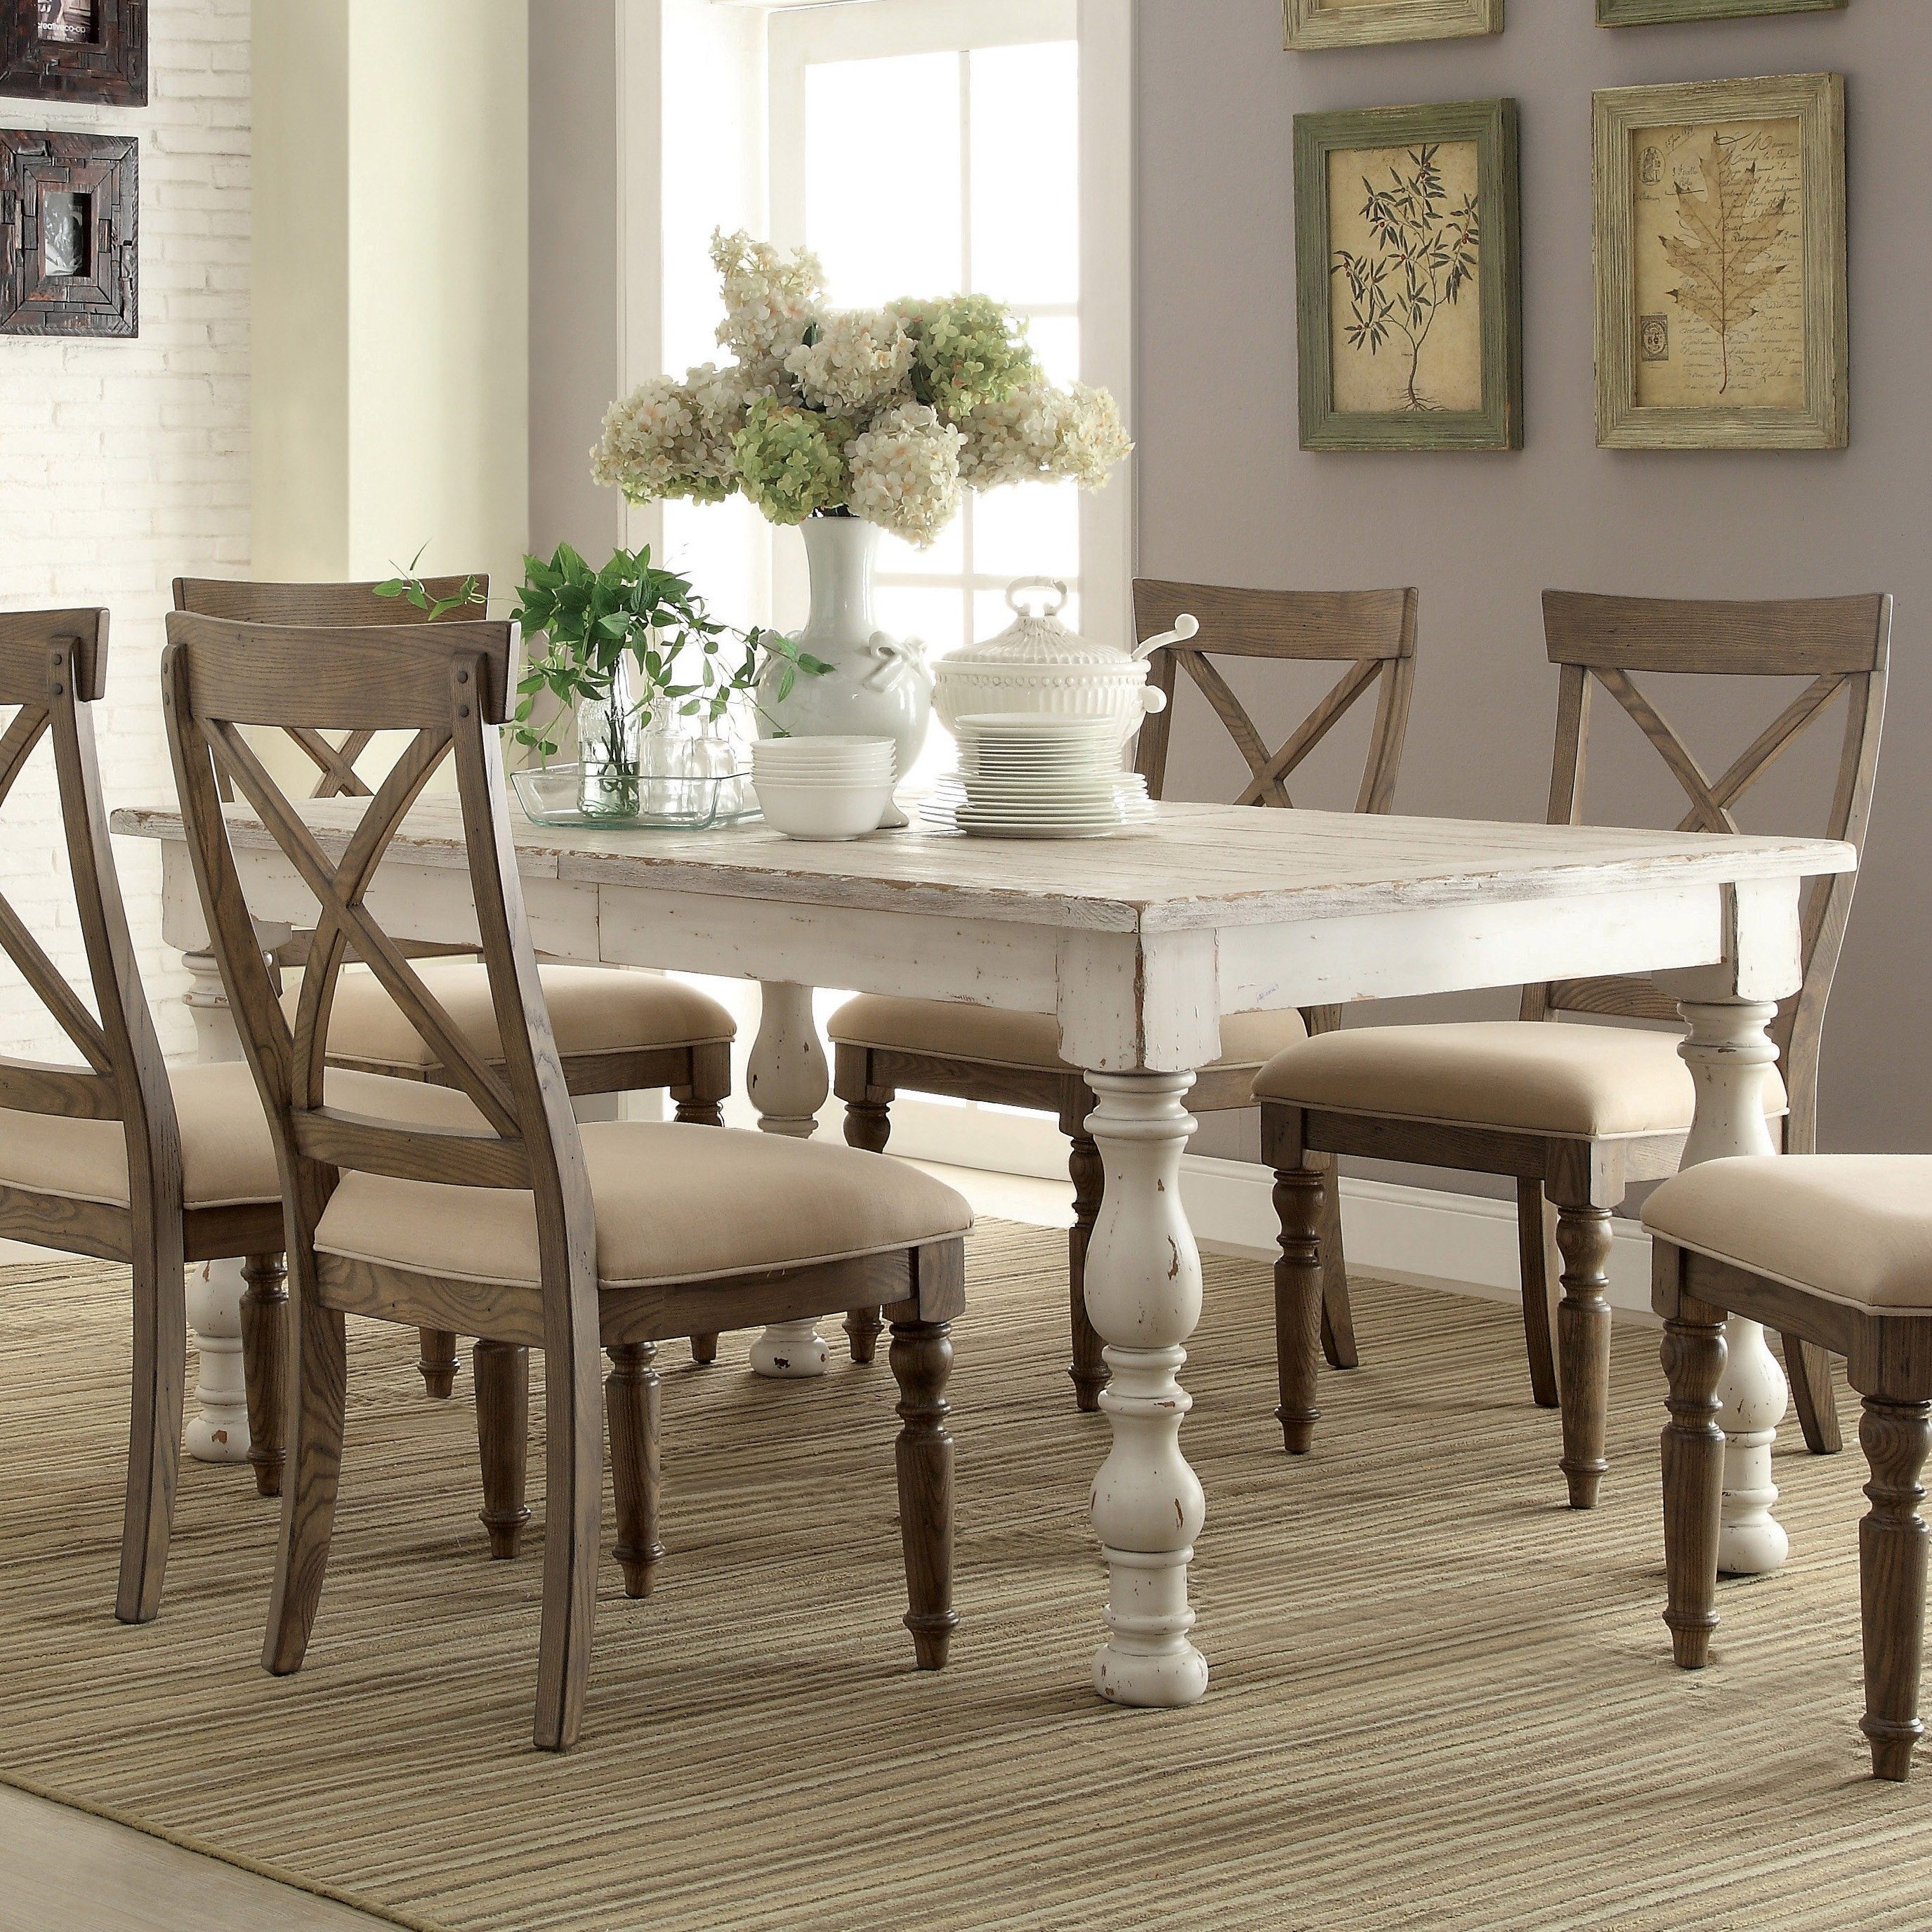 Aberdeen wood rectangular dining table and chairs in for White and wood dining table and chairs